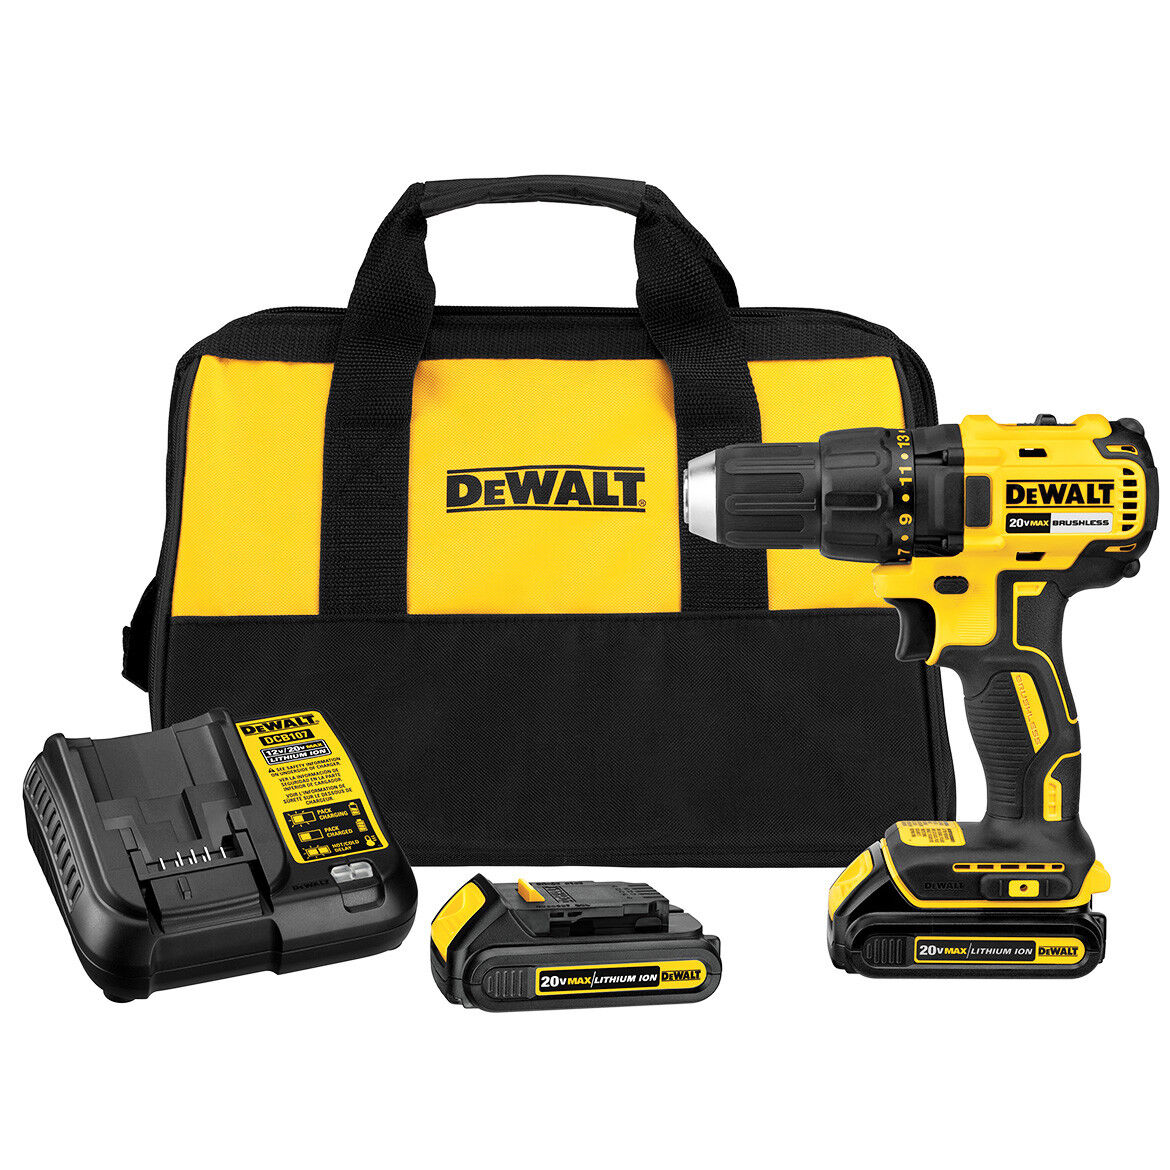 DeWALT DCD777CR 20-Volt 1/2-Inch Lithium-Ion Brushless Compact Drill Driver